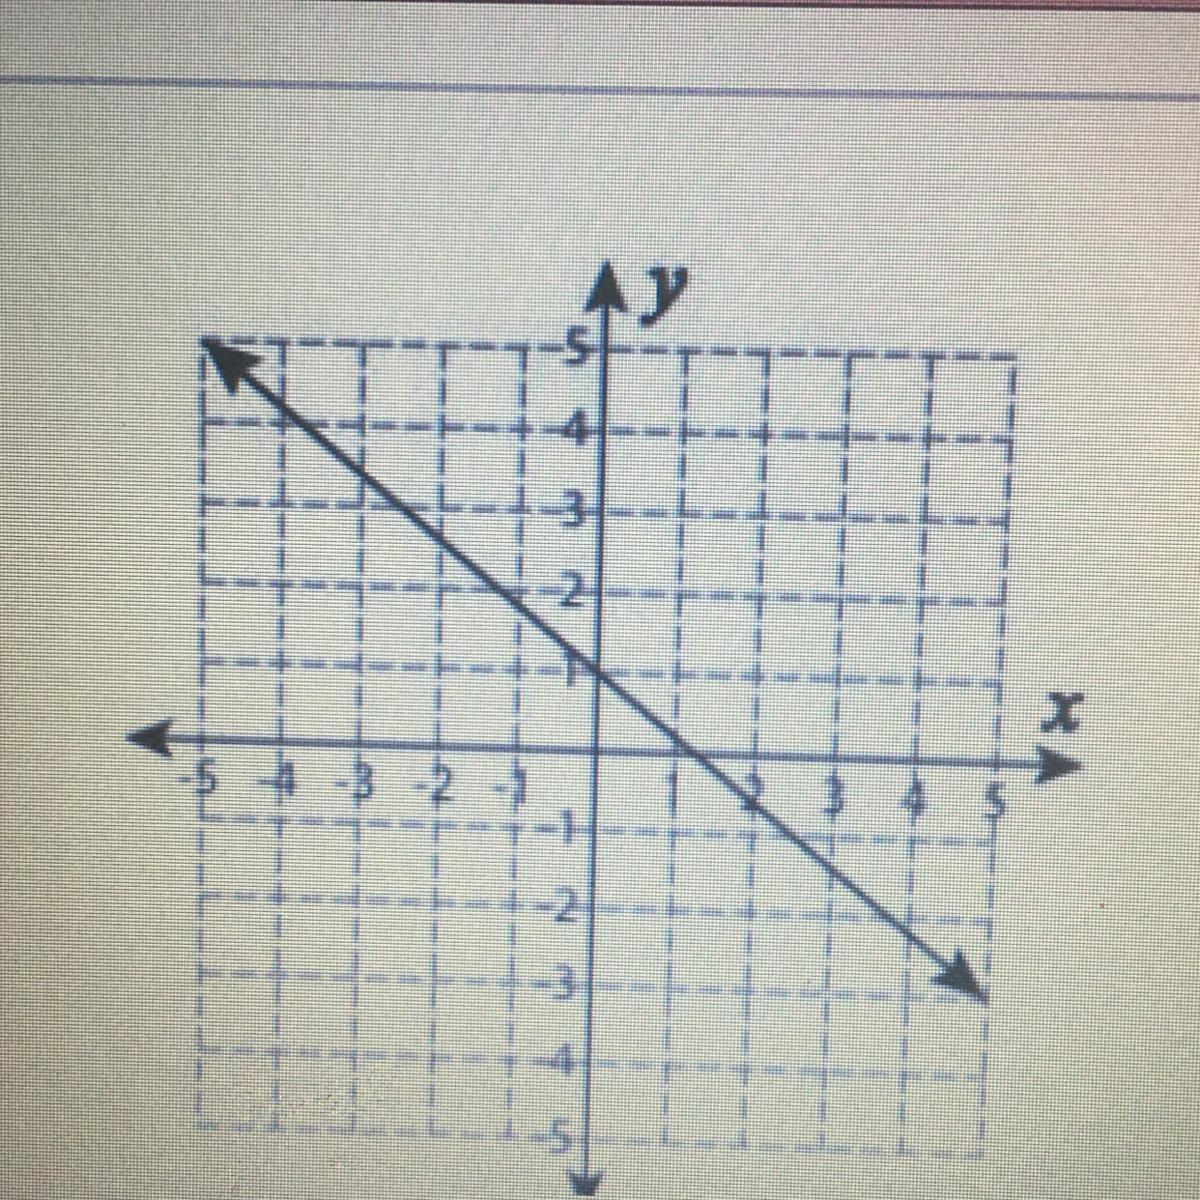 Which Best Describes The Slope Of The Line Shown On The